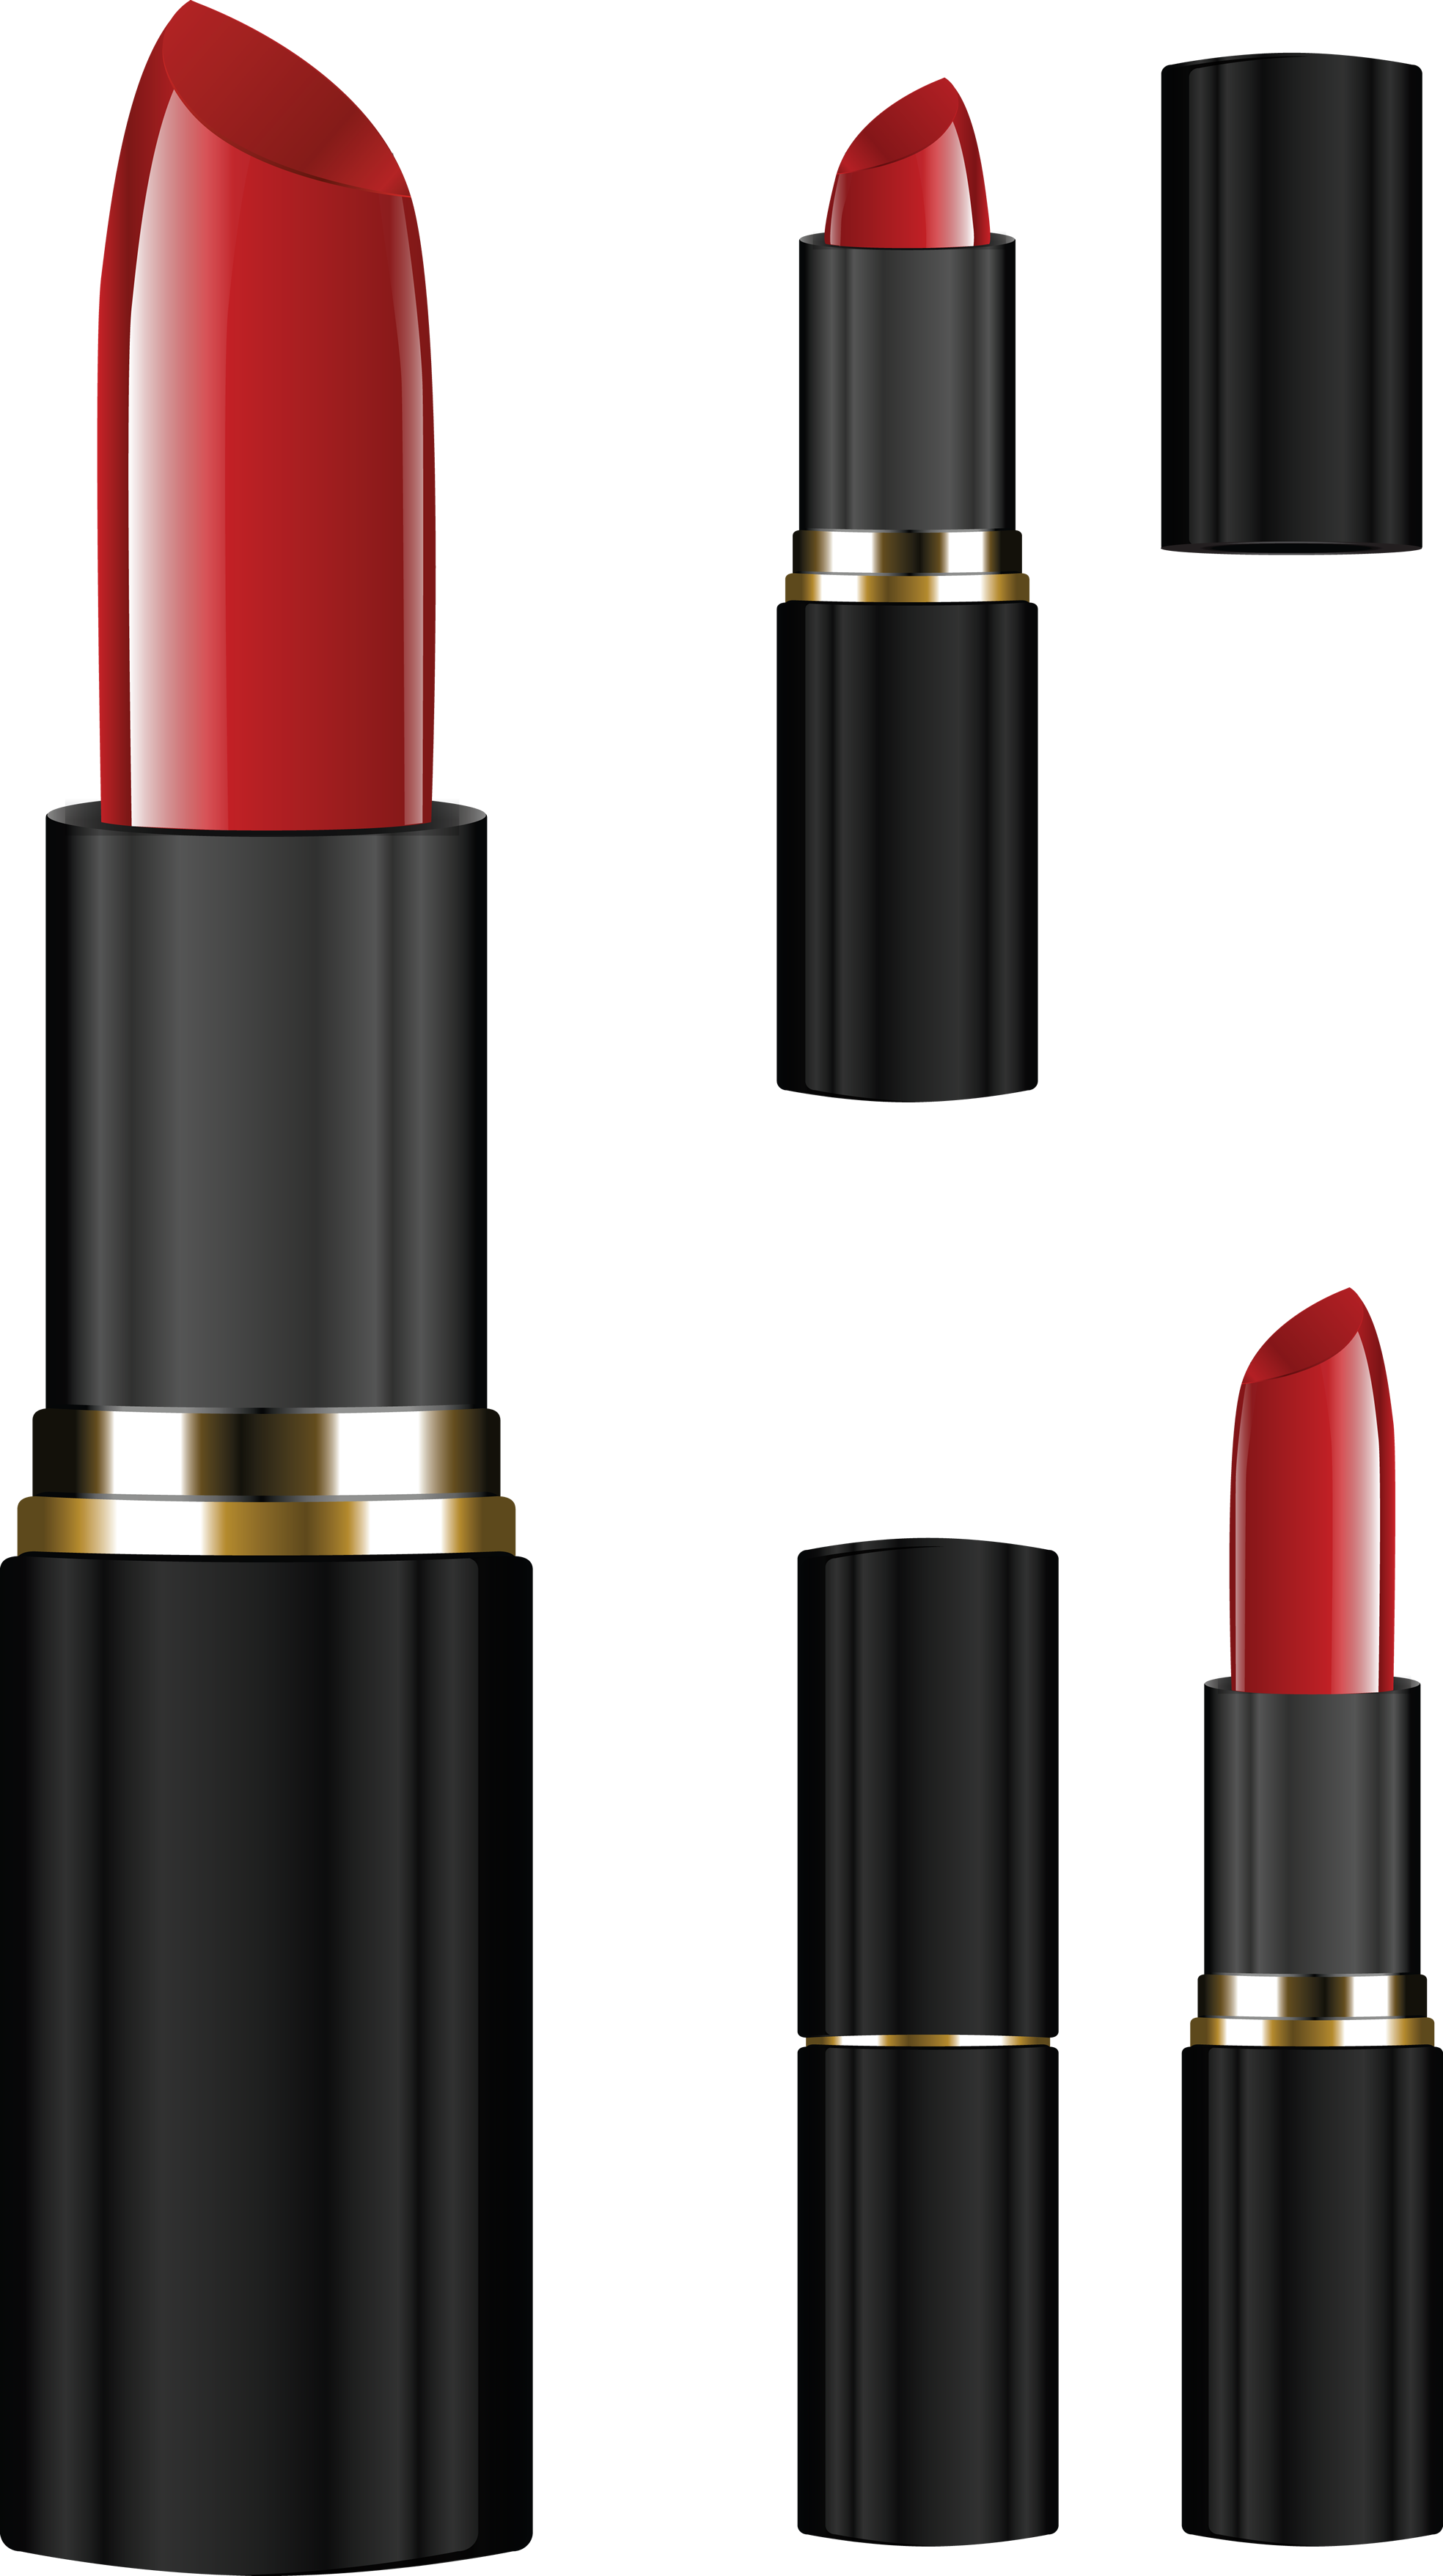 Makeup background png. Lipstick images free download